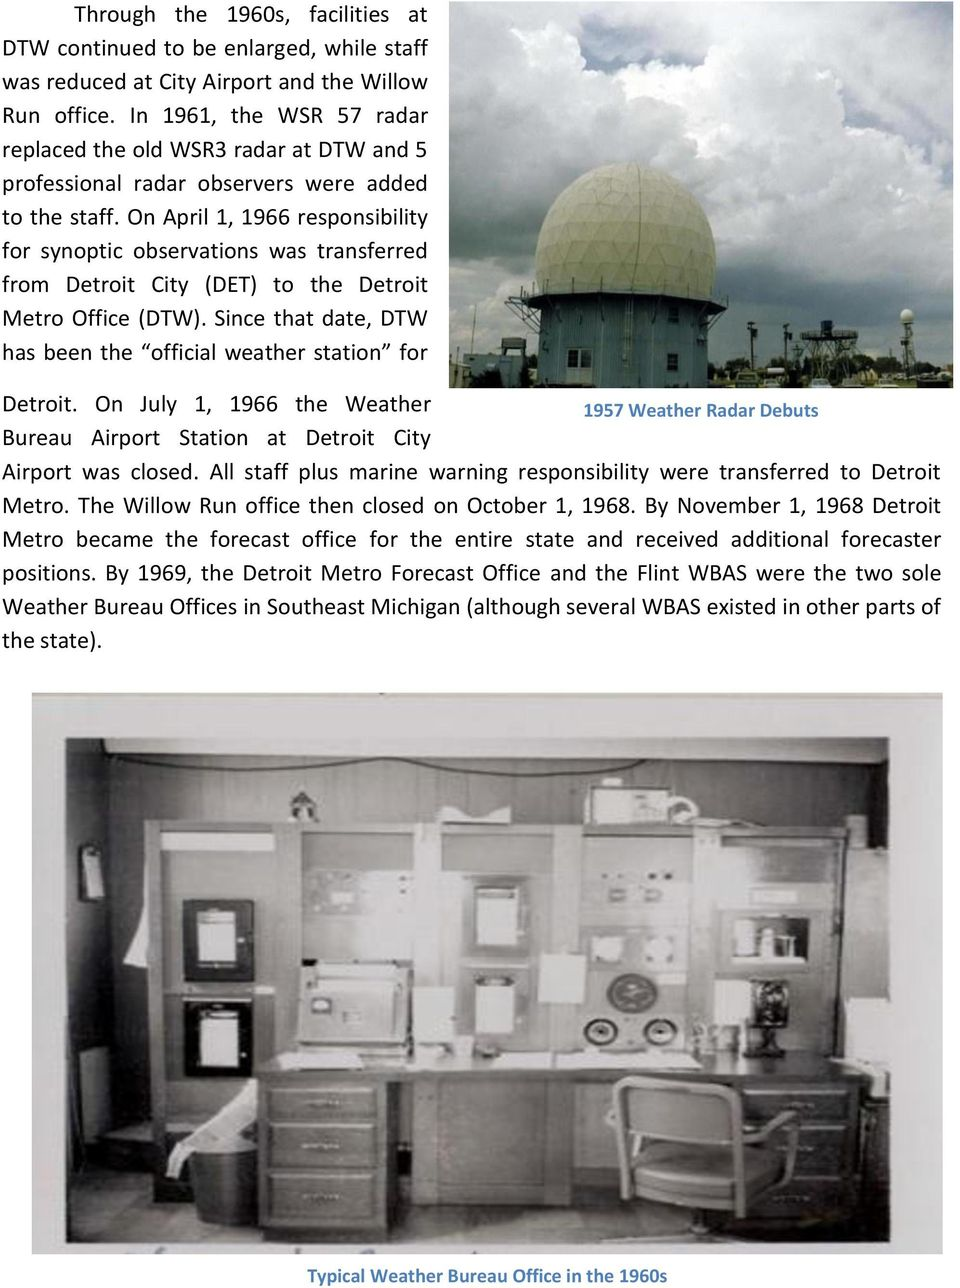 History of the NOAA National Weather Service in Southeast Michigan on